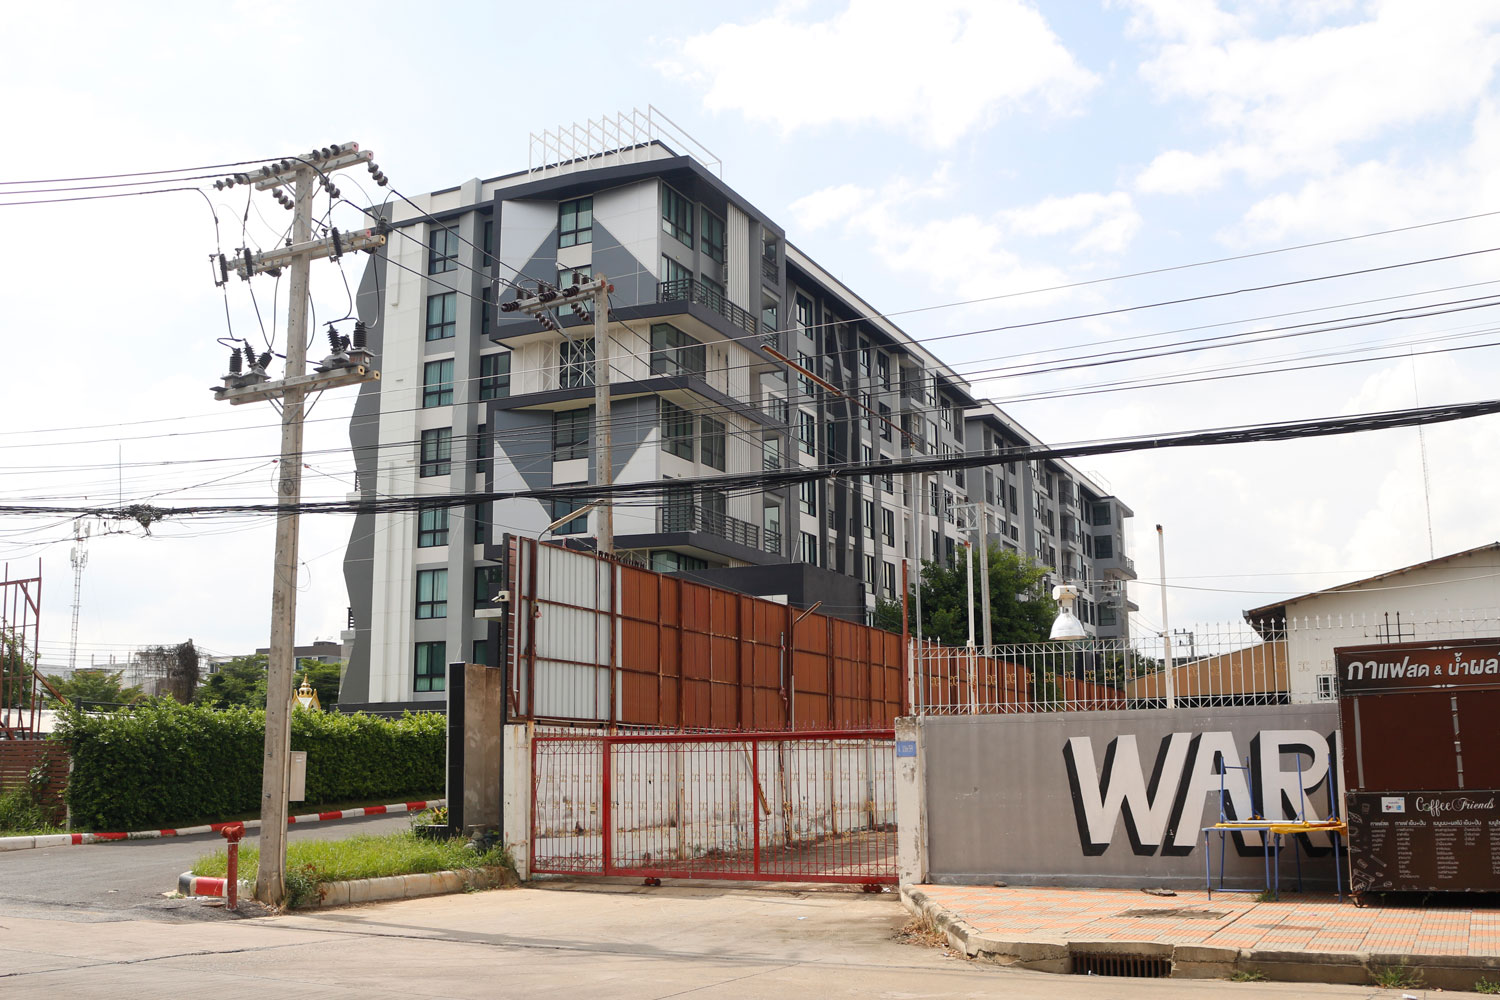 Pol Col Thitisan Utthanaphon, 39, the sacked chief of Muang district police in in Nakhon Sawan and prime suspect in the fatal torture case, rents a room at this condominium building in the lower northern province. (Photo: Chalit Phumruang)